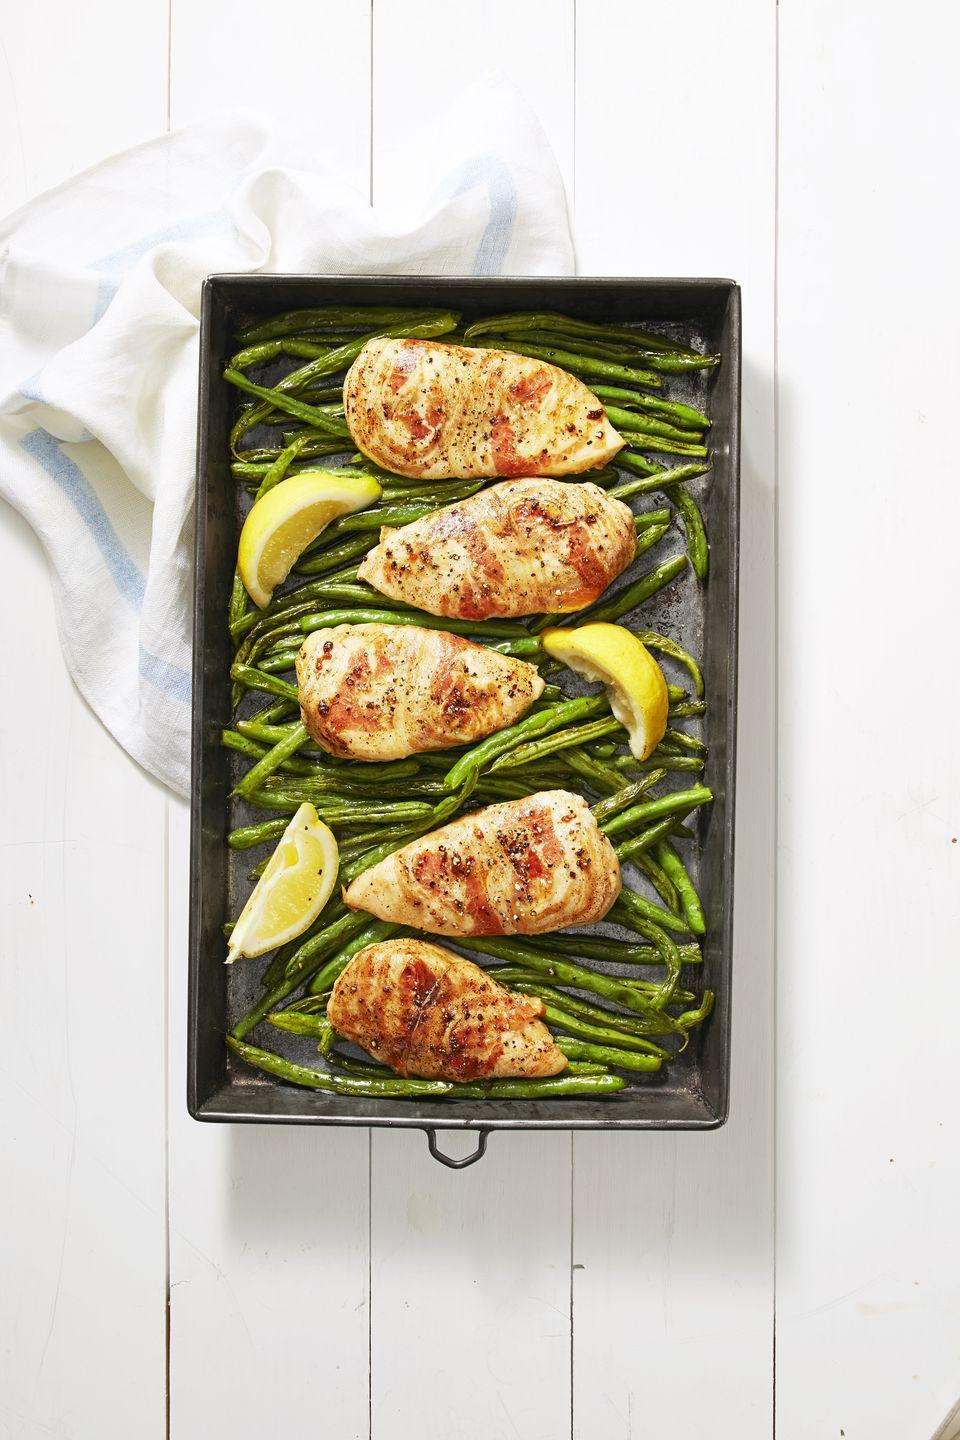 "<p>Turn four ingredients into a crispy chicken bake in just minutes.</p><p><em><a href=""https://www.goodhousekeeping.com/food-recipes/a38872/pancetta-chicken-recipe/"" rel=""nofollow noopener"" target=""_blank"" data-ylk=""slk:Get the recipe for Pancetta Chicken »"" class=""link rapid-noclick-resp"">Get the recipe for Pancetta Chicken »</a></em></p>"